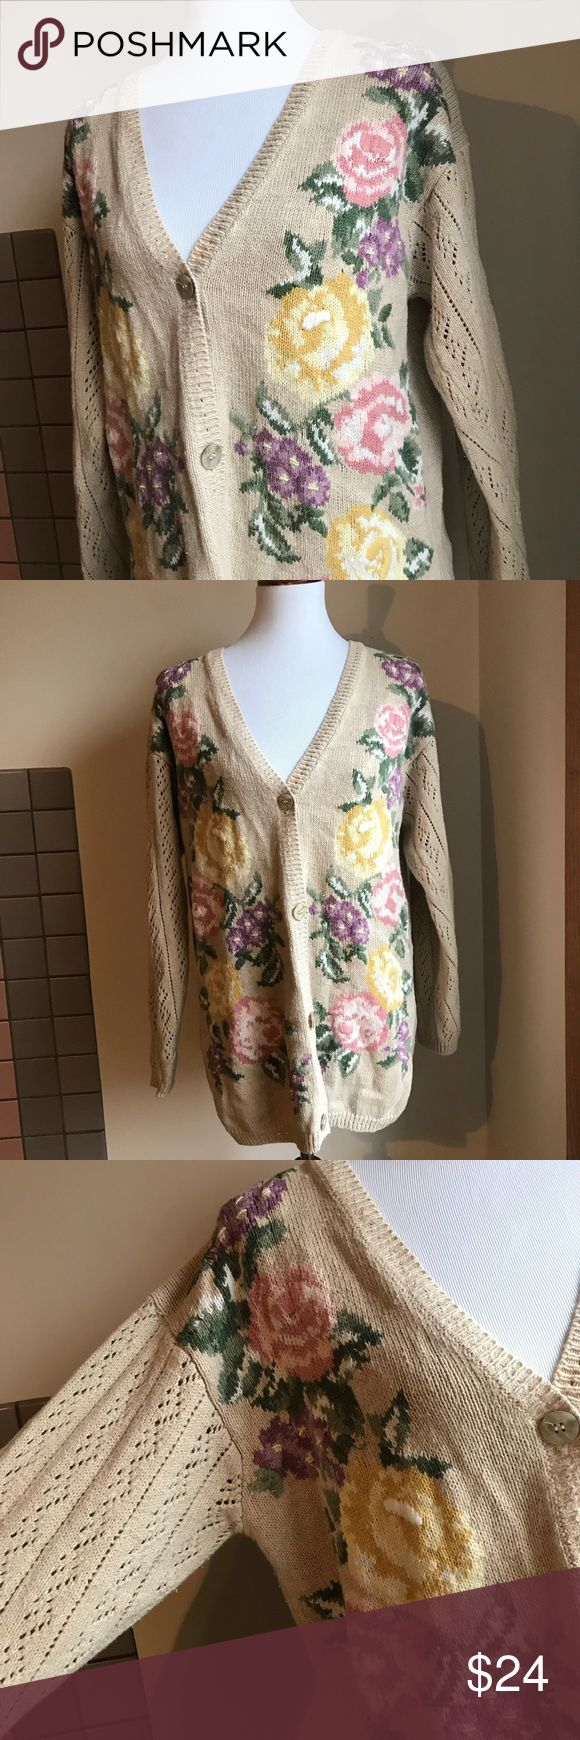 Vintage Rose Cardigan Vintage Rose Cardigan    Too stinking cute! This beige cardigan features pastel colored embroidered roses, and the tag says they were embroidered by hand! Feels like cotton, not scratchy at all. The sleeves are also detailed in the way they're woven. No size is pictured on tags, but looks to fit a small/medium oversized or a large comfortably. Ask for measurements. Great condition Sweaters Cardigans